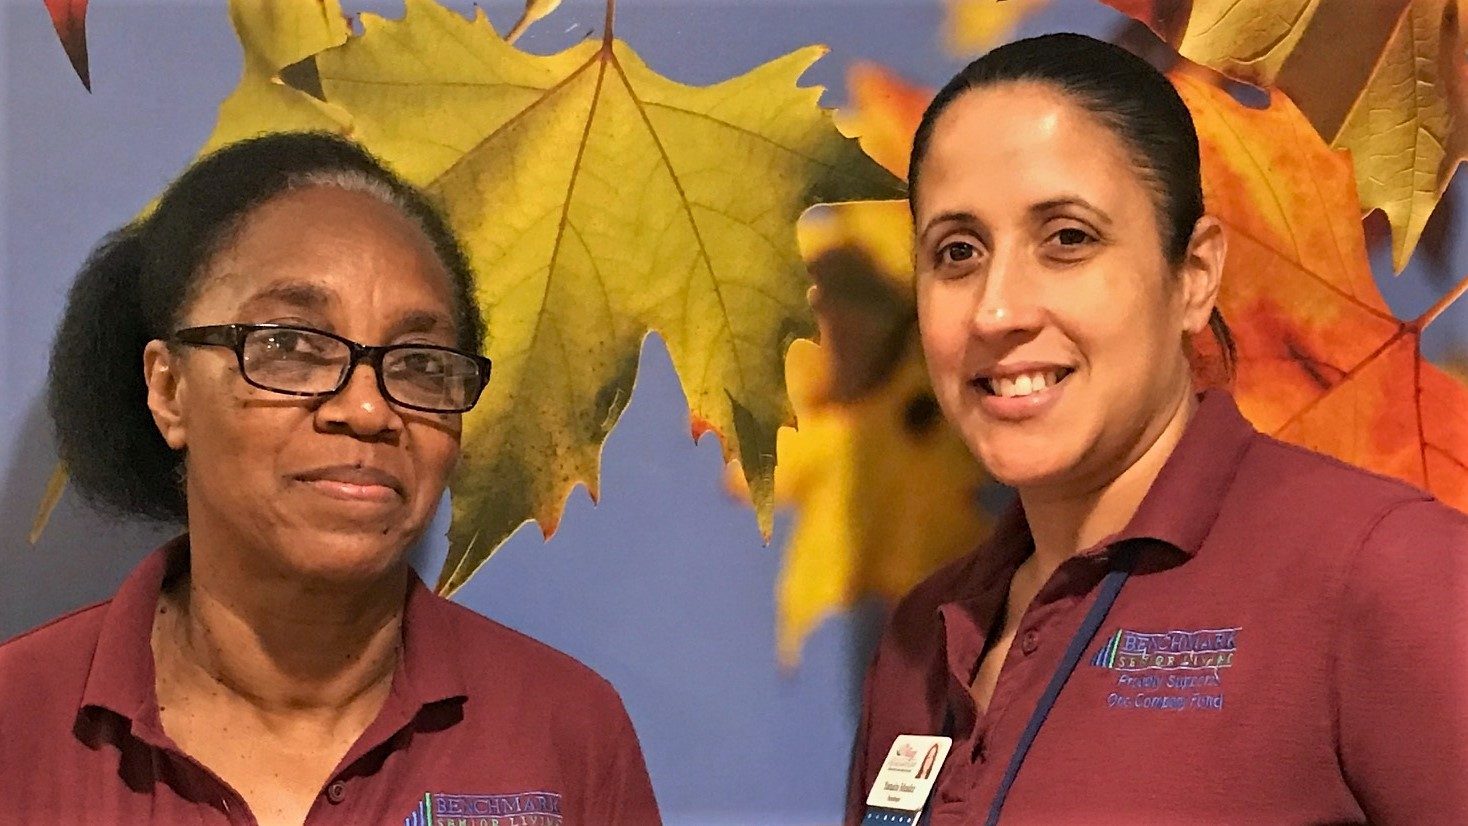 Anicie Labady, left, and Yamaira Mandez, housekeepers at The Village at Buckland Court, have family members who were heavily impacted when Hurricane Maria unleashed its fury in the Caribbean.